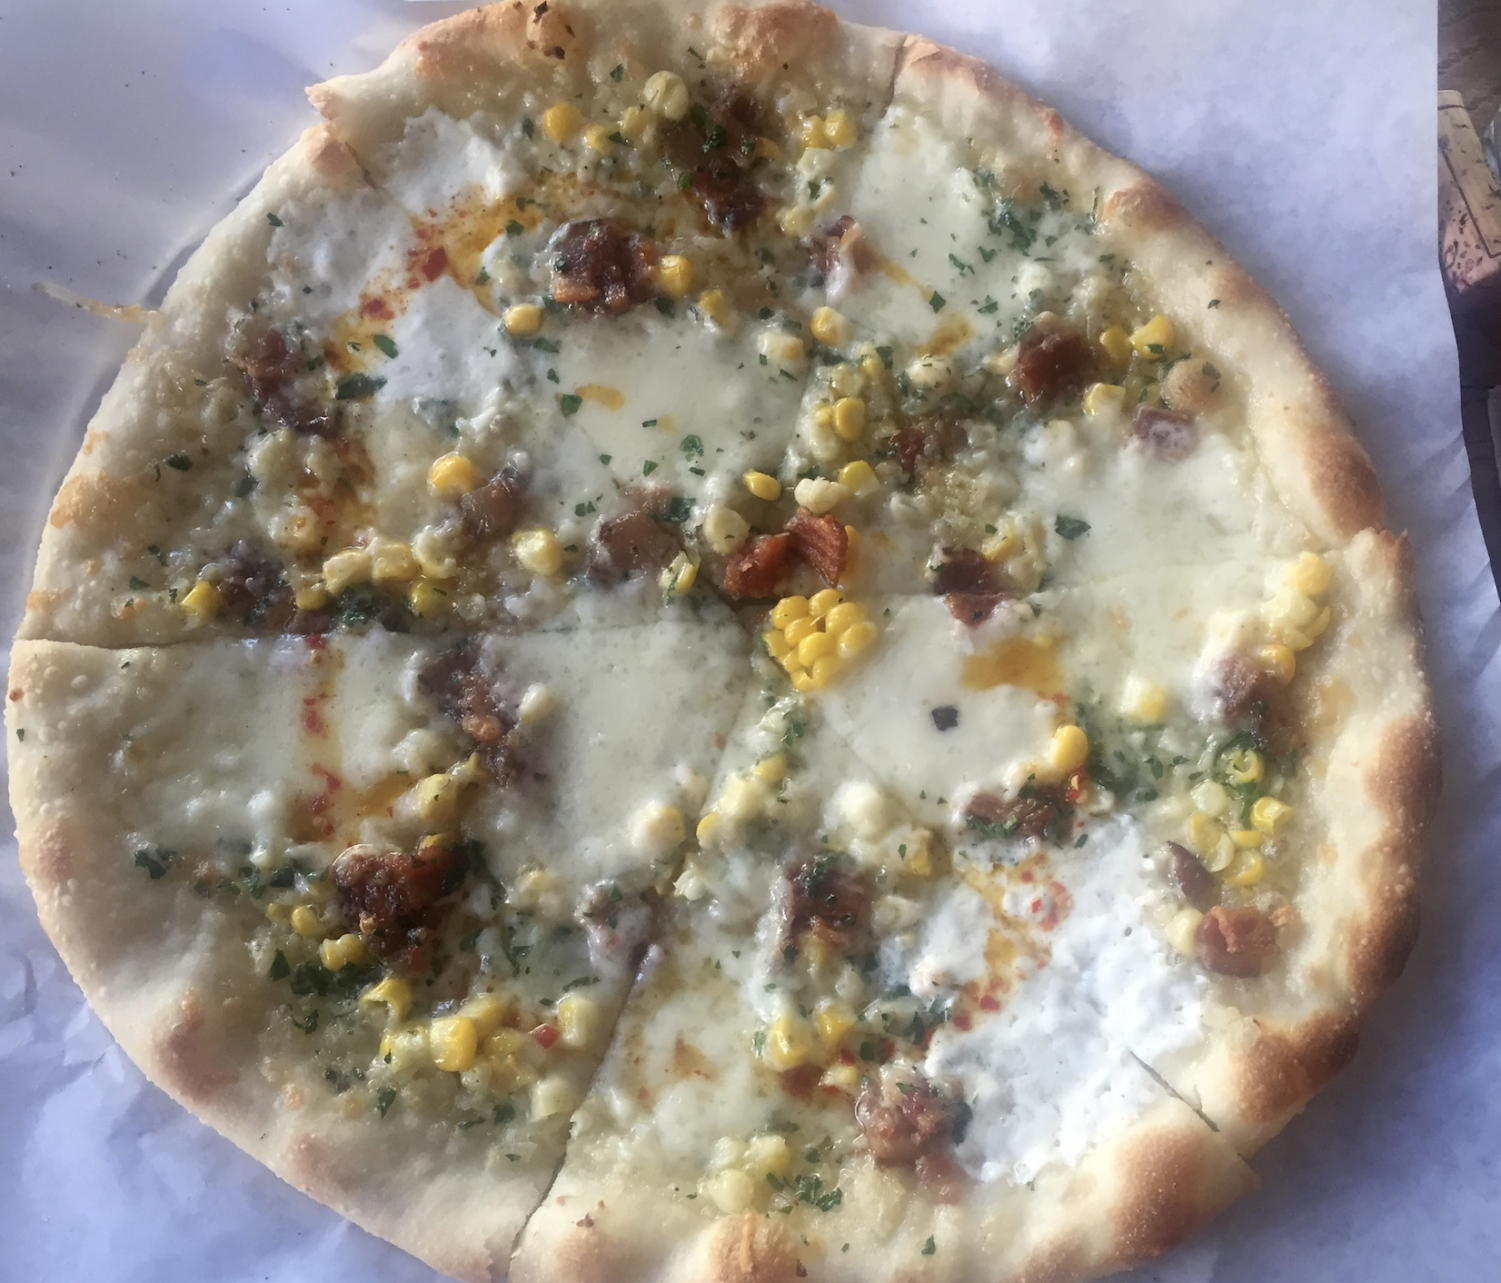 A bi-weekly special pizza at Pizzetta 211